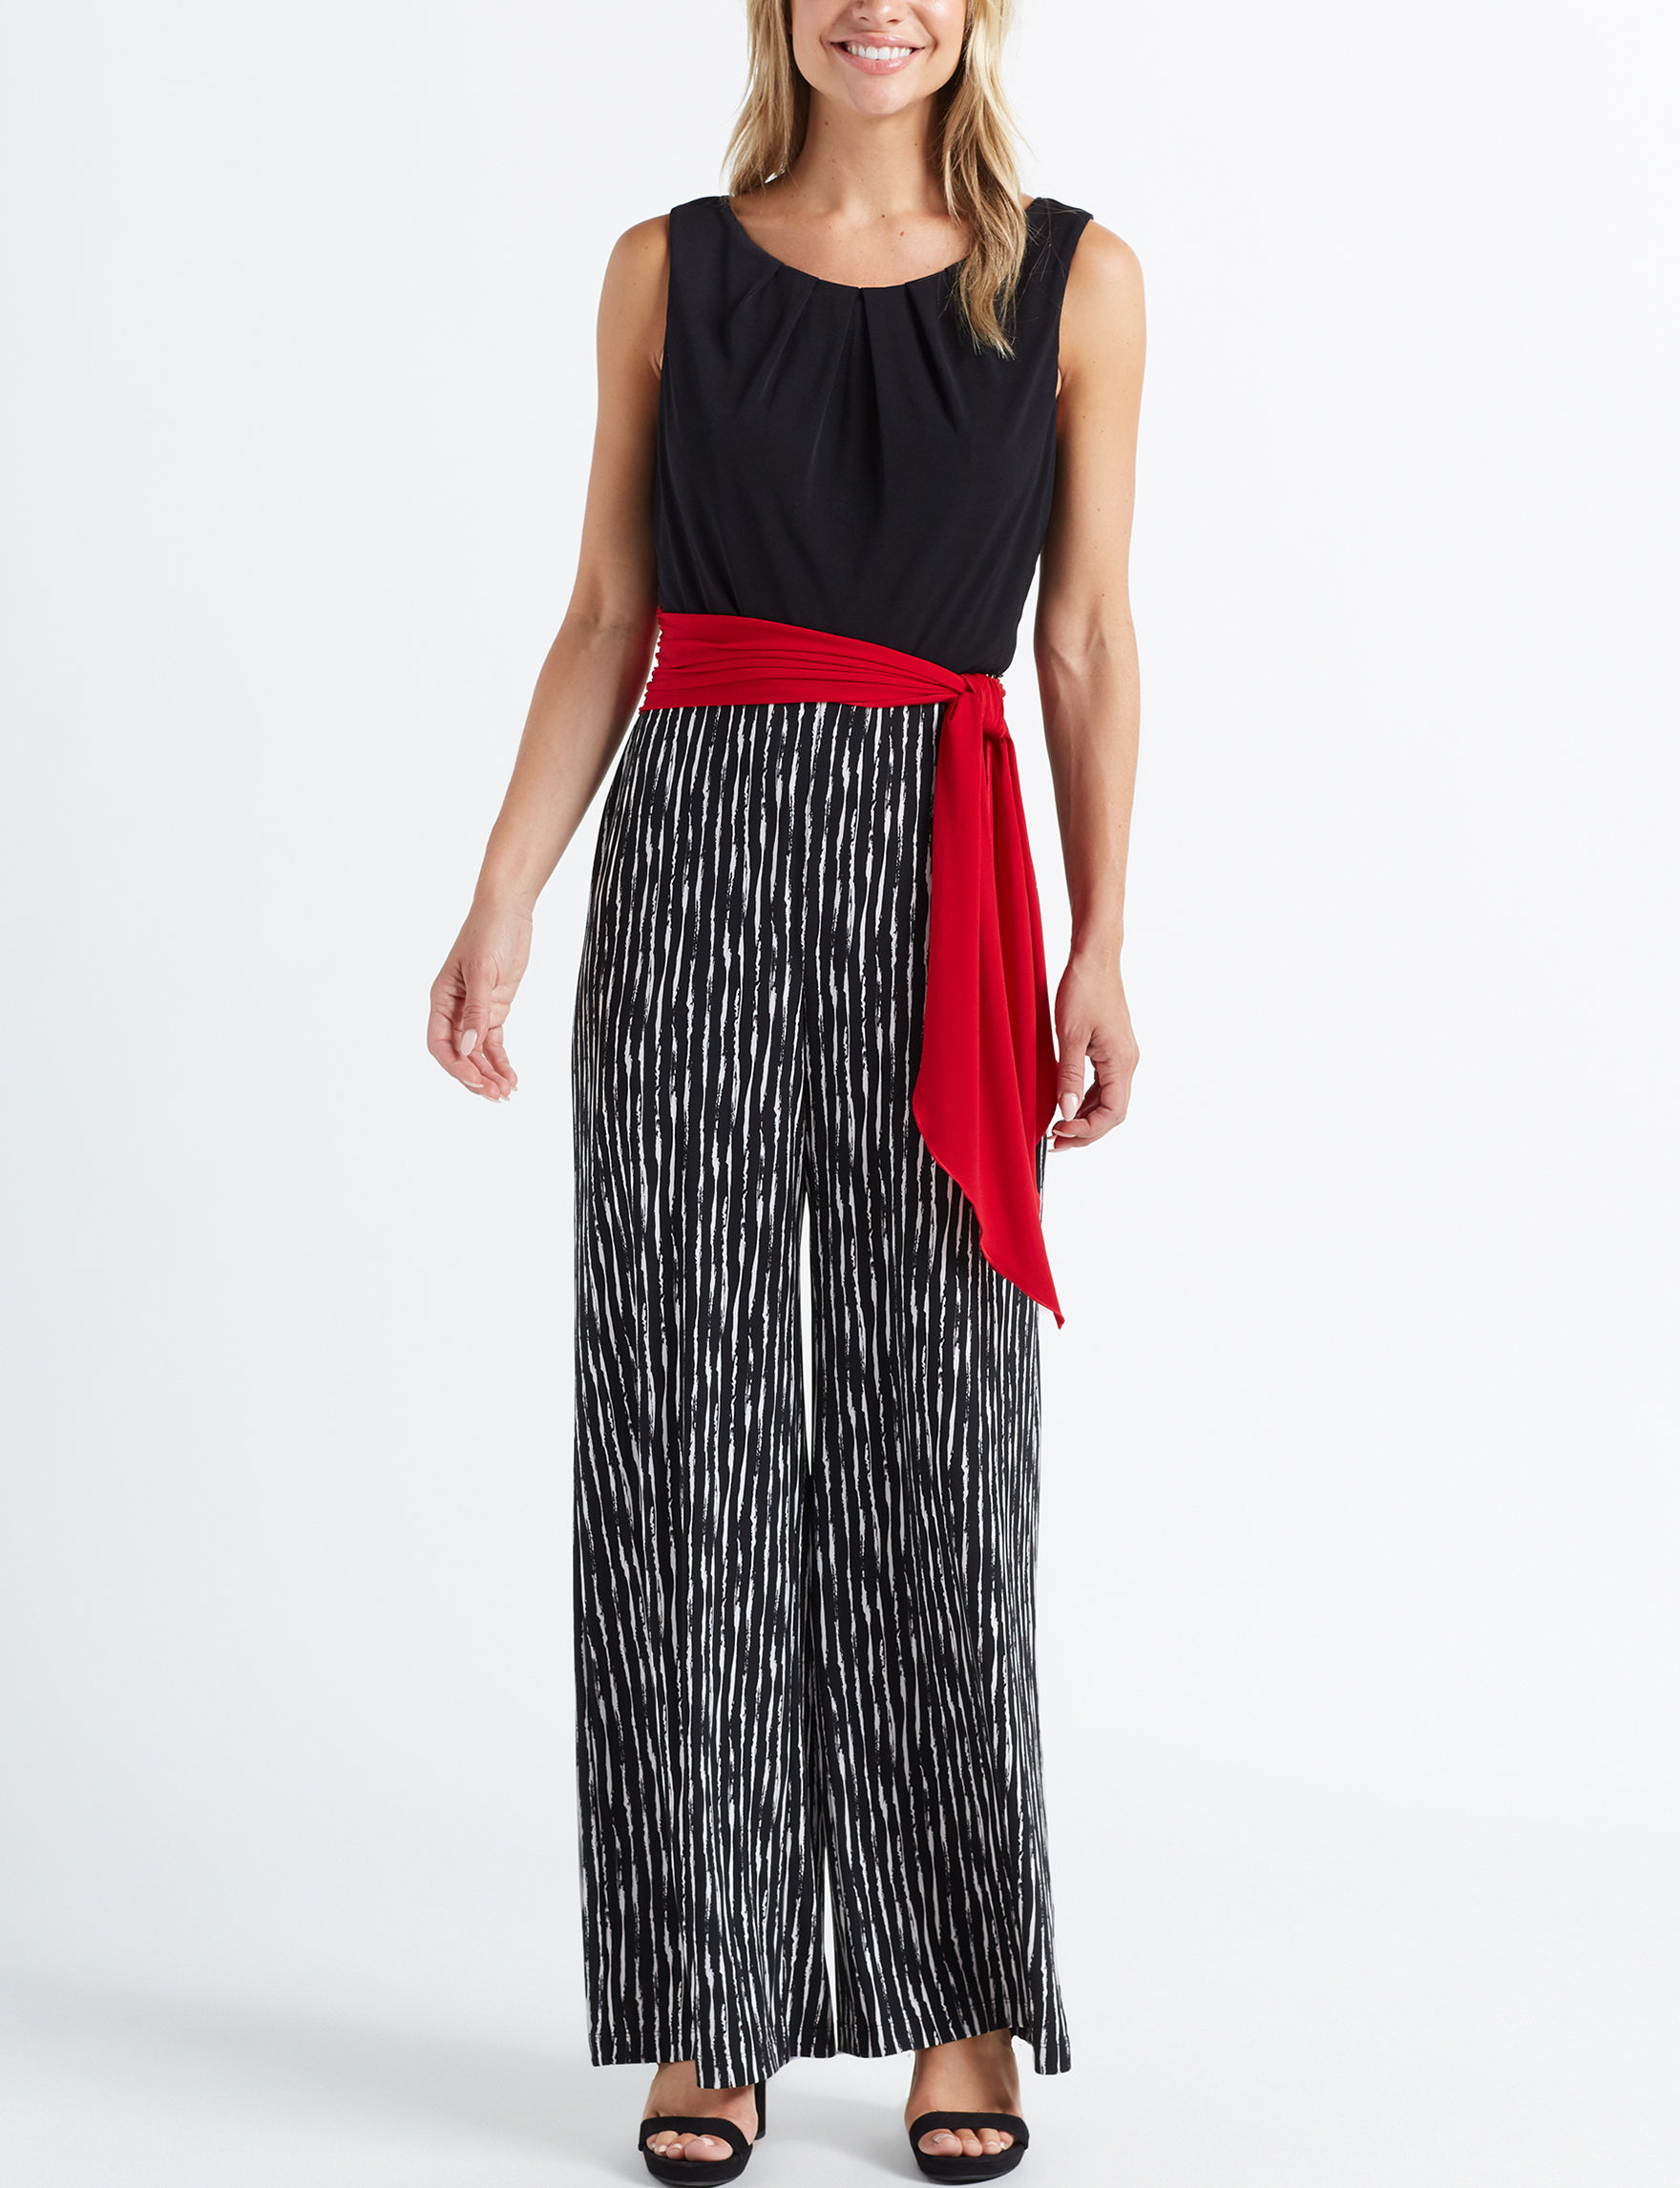 Connected Black Multi Cocktail & Party Evening & Formal Everyday & Casual